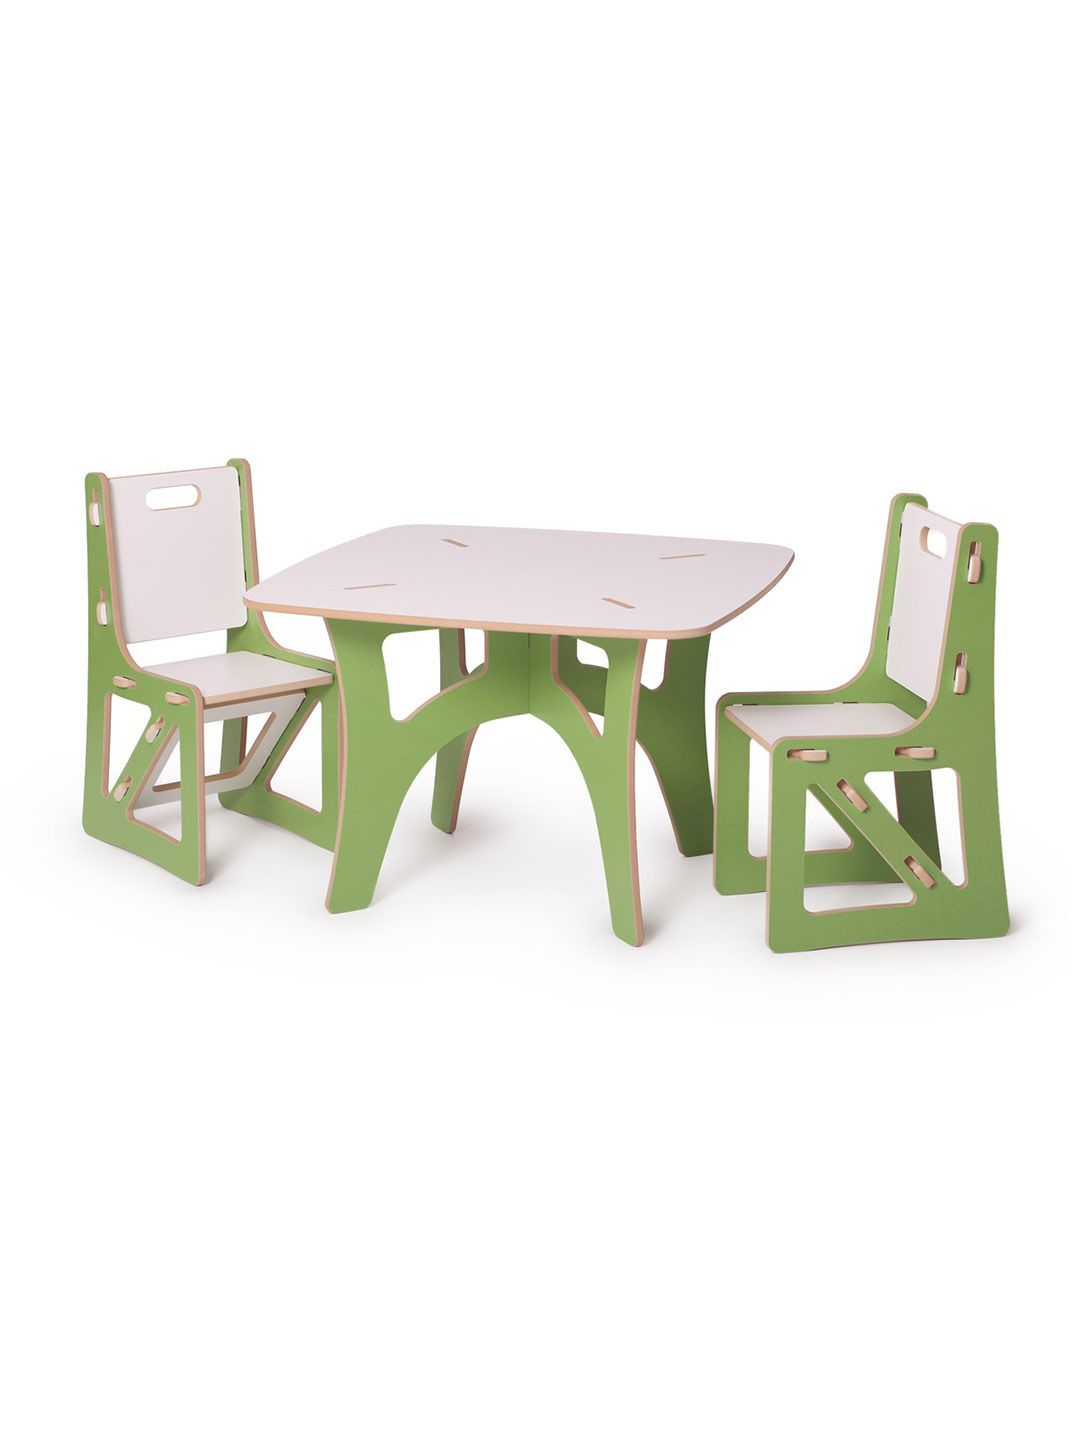 Charmant Sprout | Kids Table U0026 Chairs